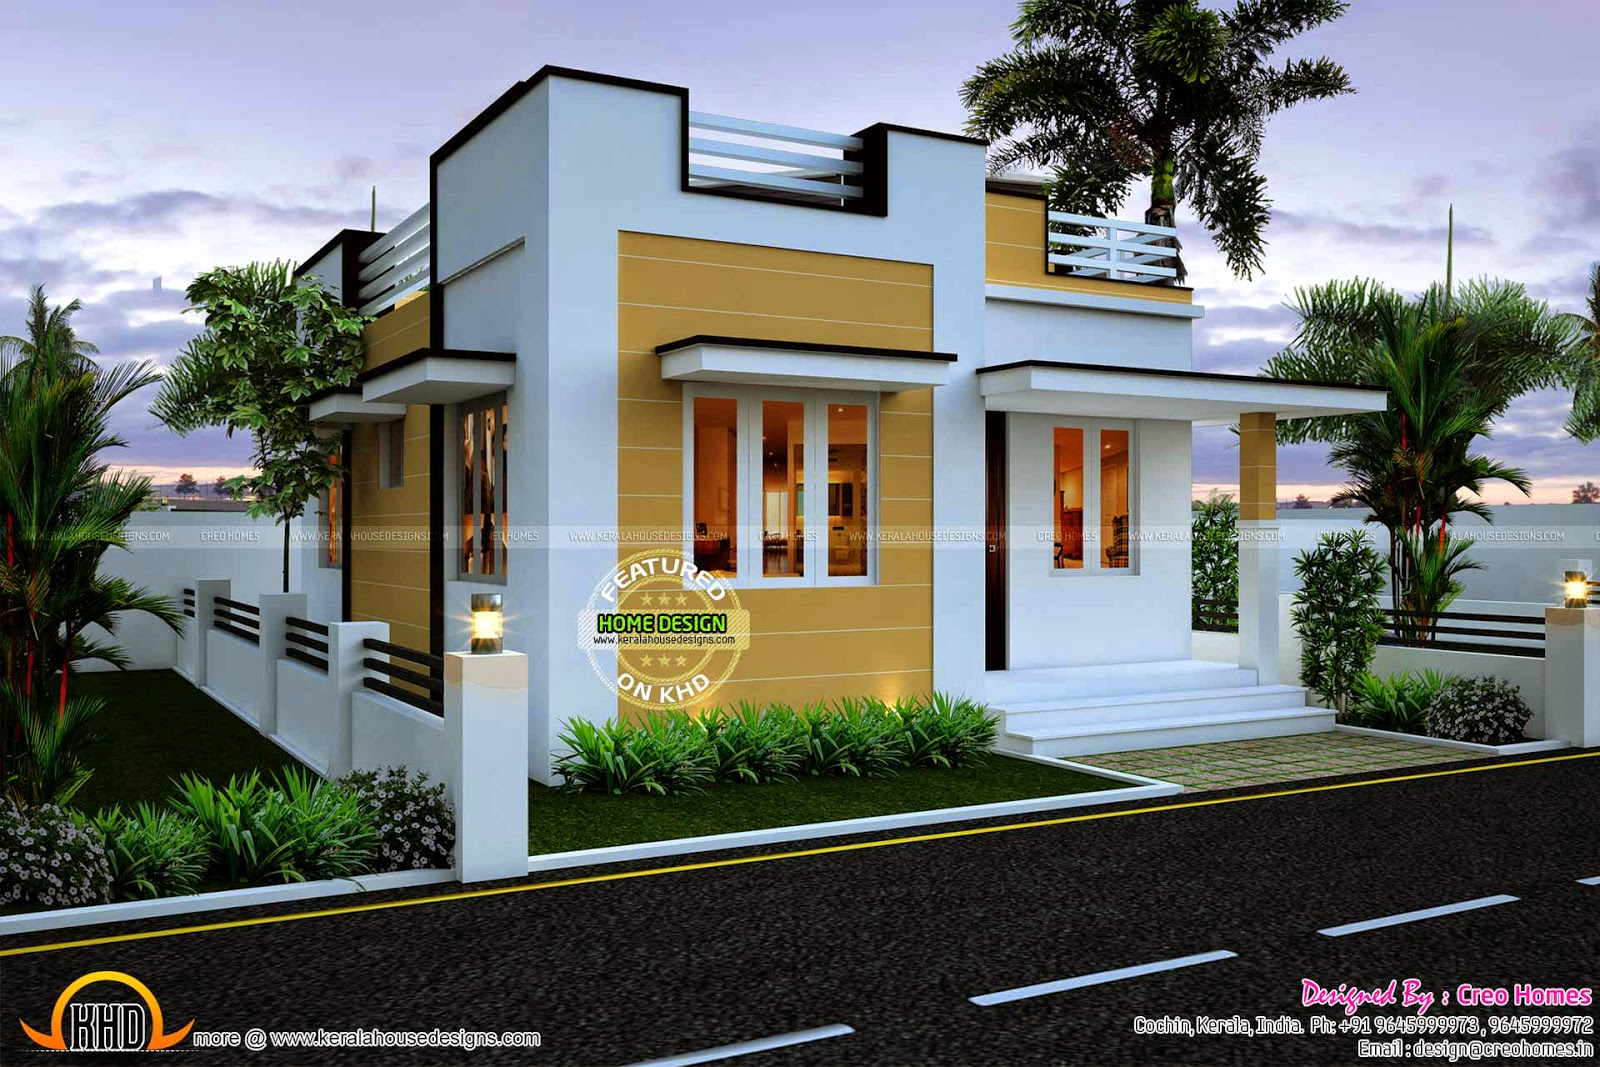 A home for 9 Lakhs!